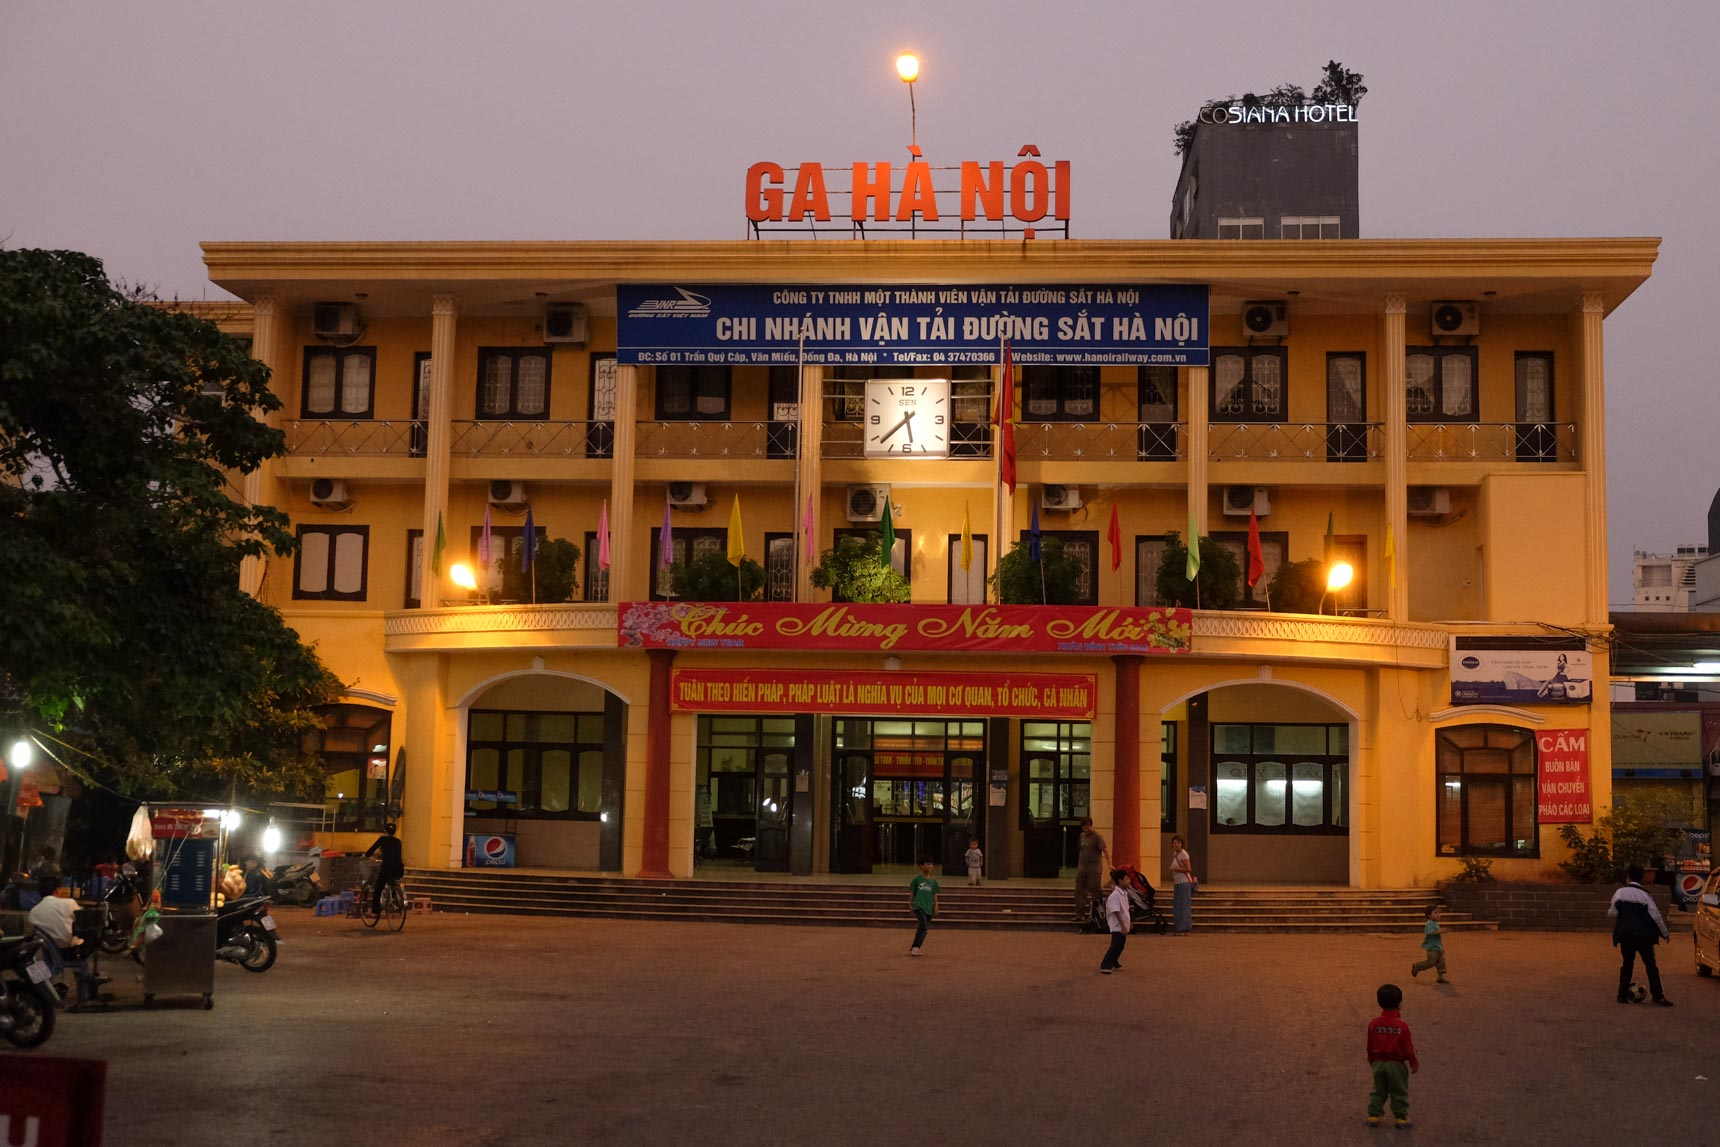 Hanoi Train Station